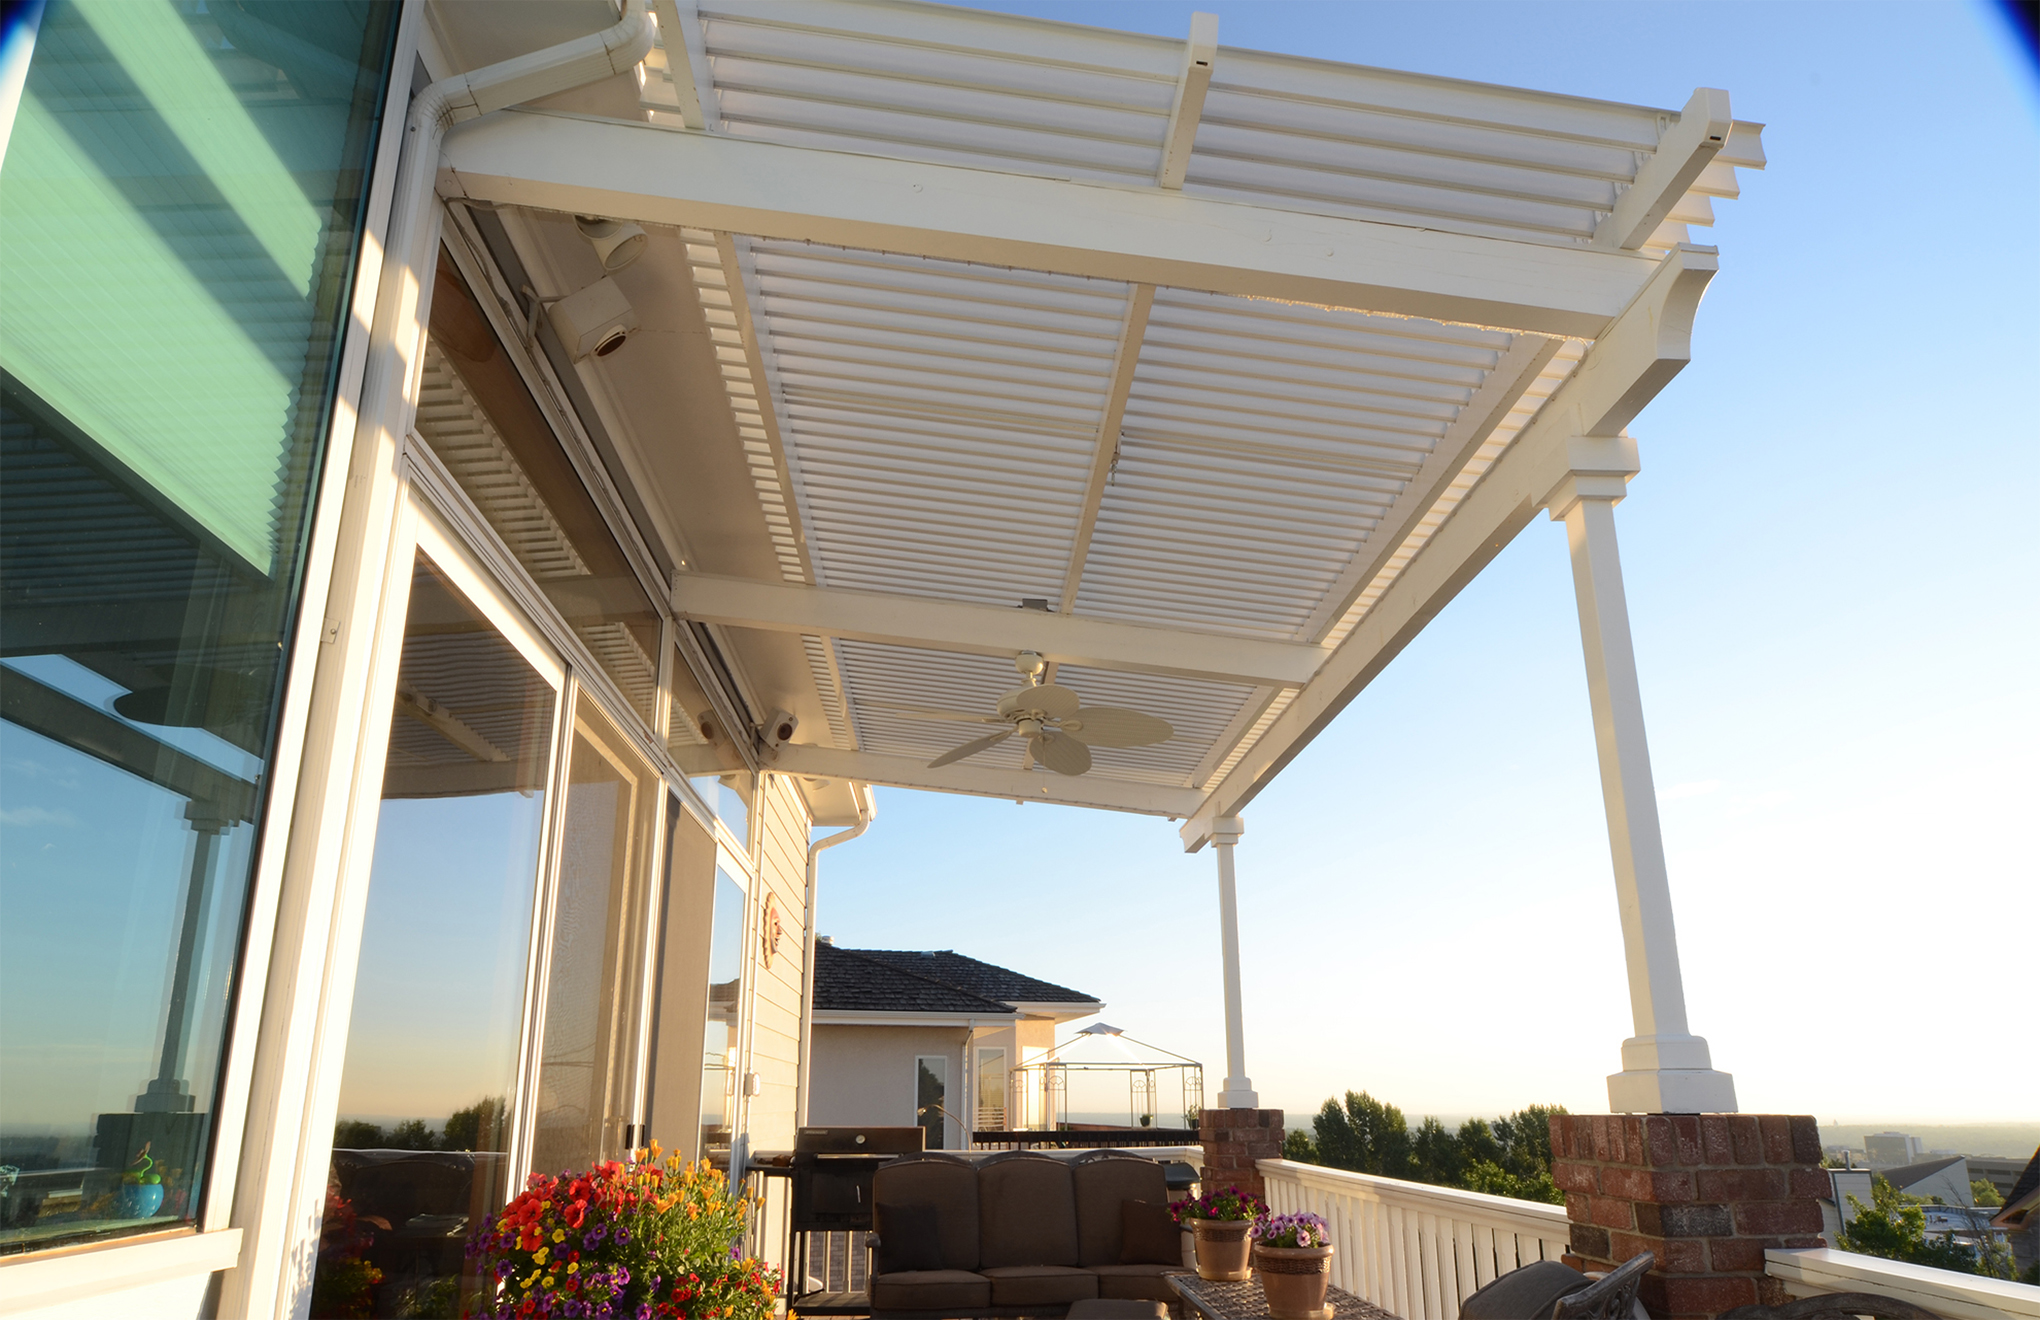 Solara adjustable patio cover built for you by Colorado Sunroom and Window